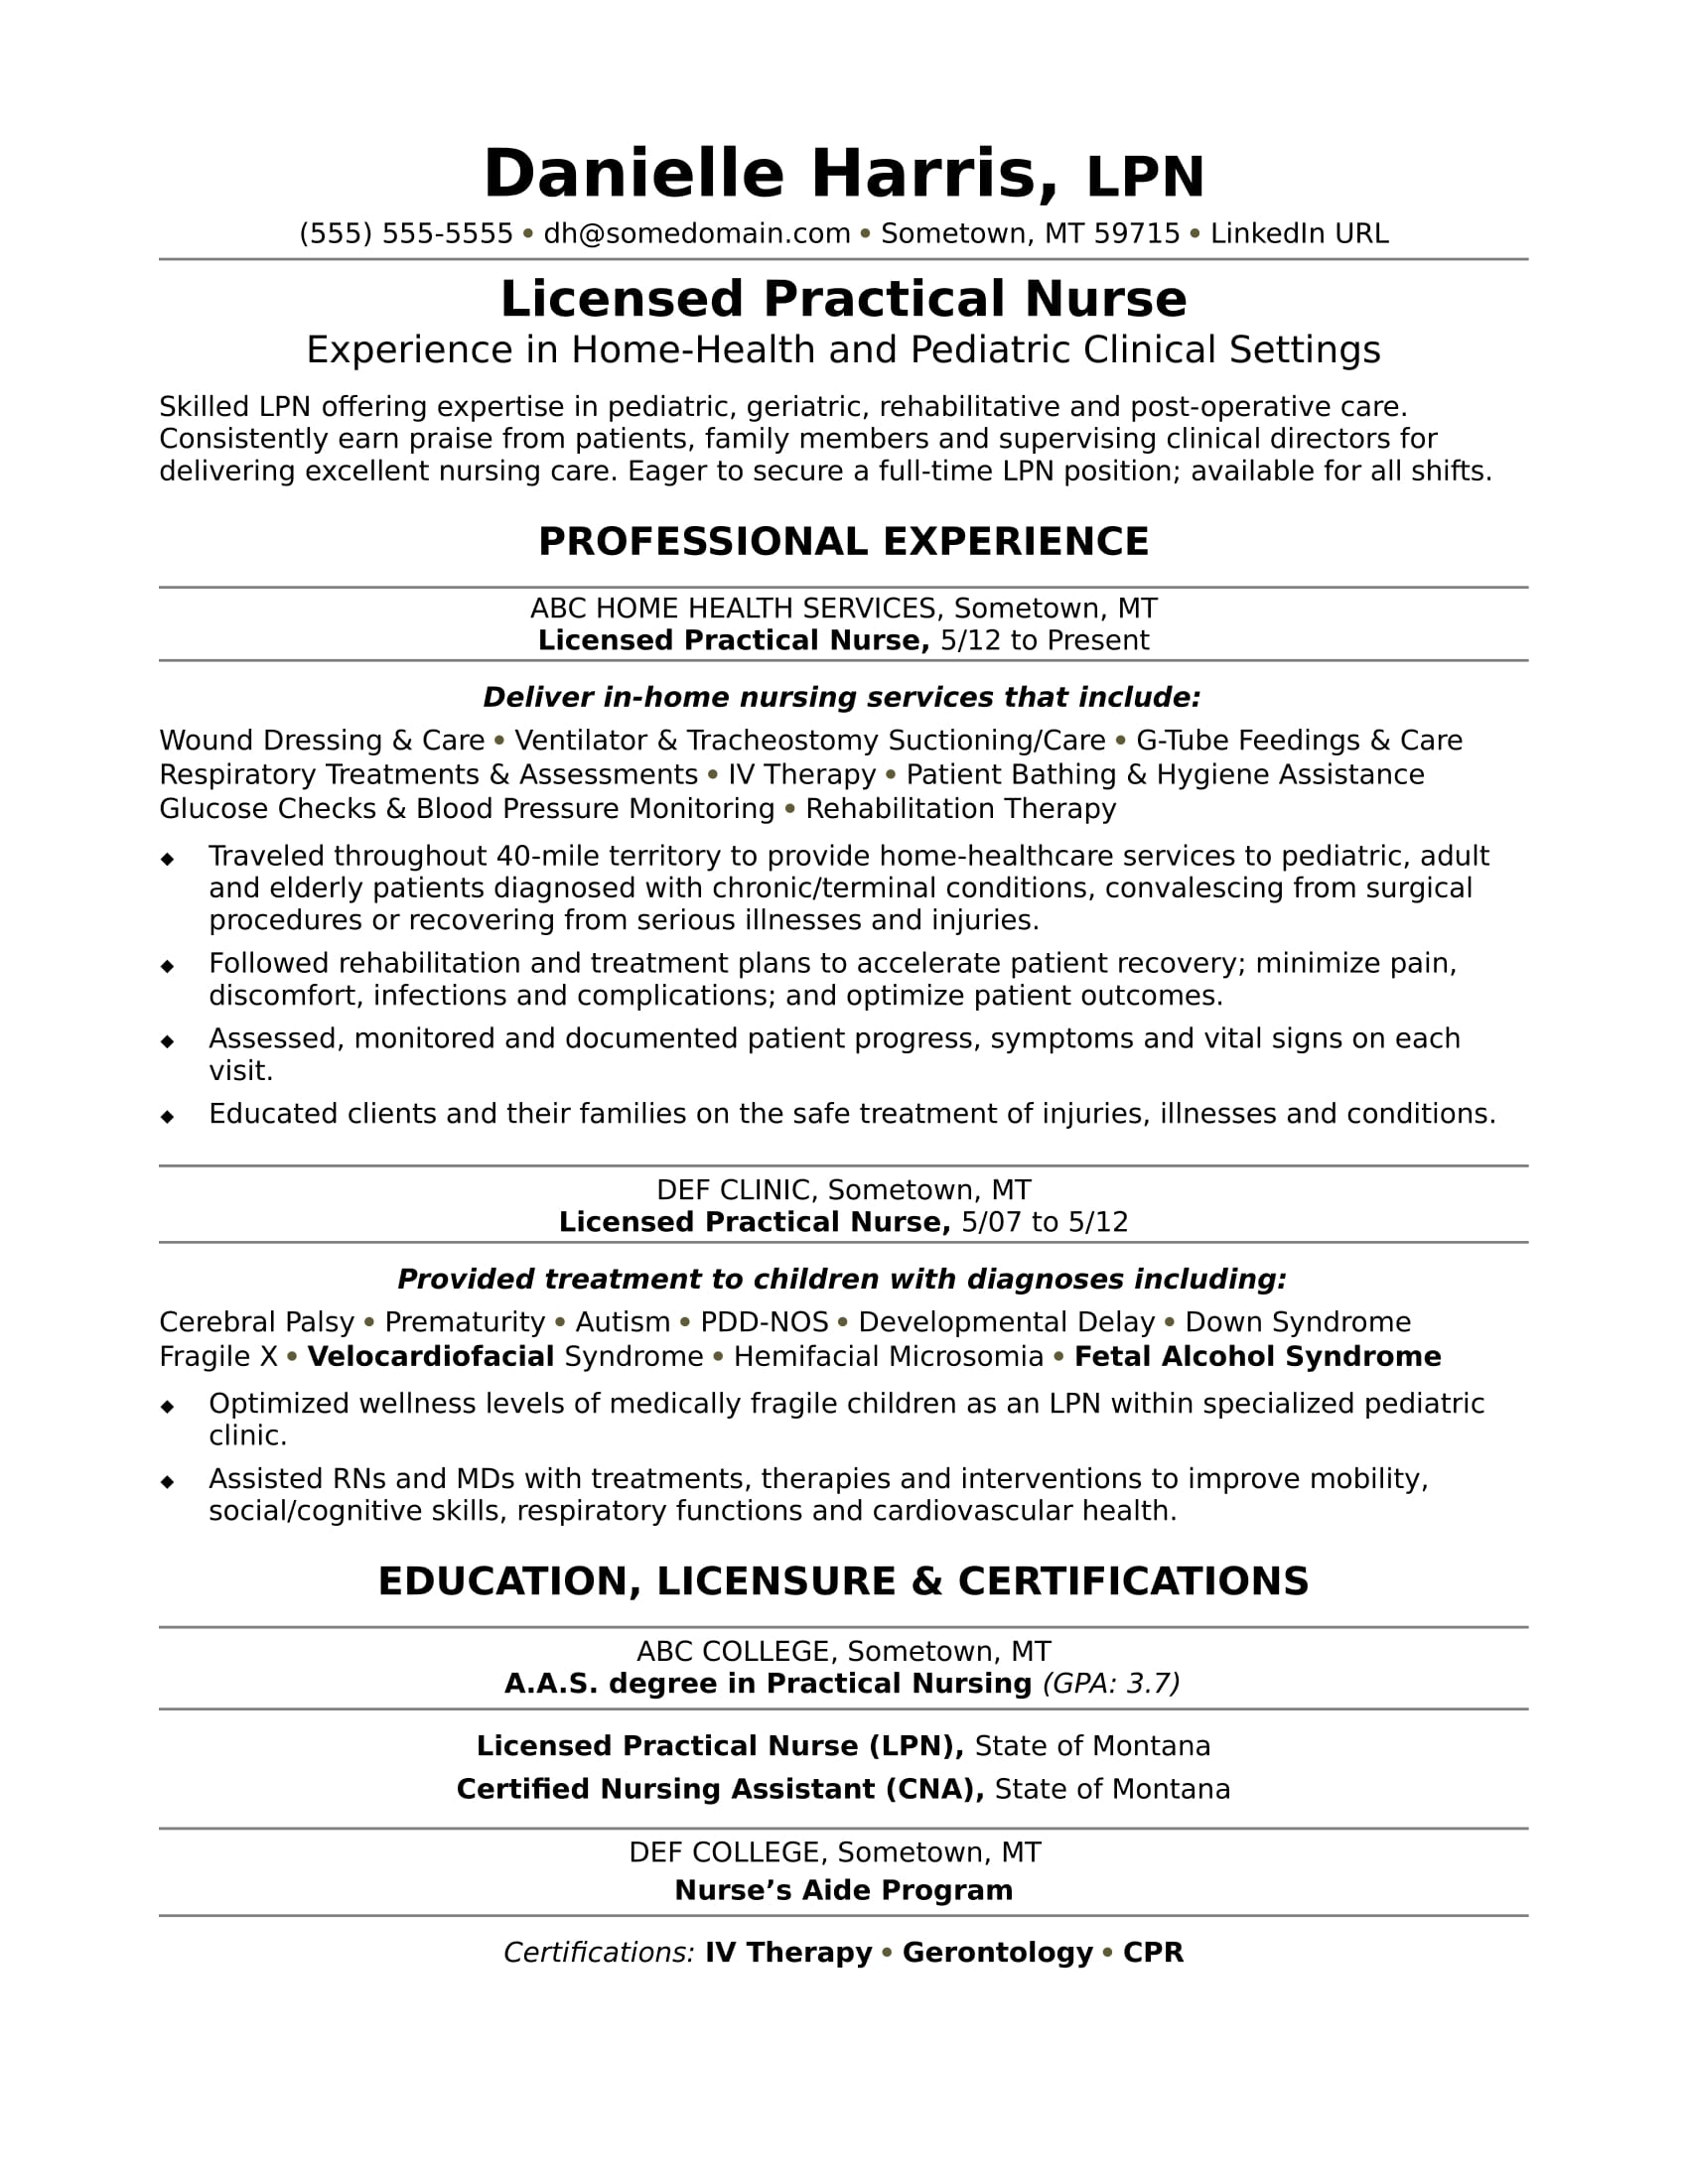 licensed practical nurse resume sample monster rehab duties construction worker quality Resume Rehab Nurse Resume Duties